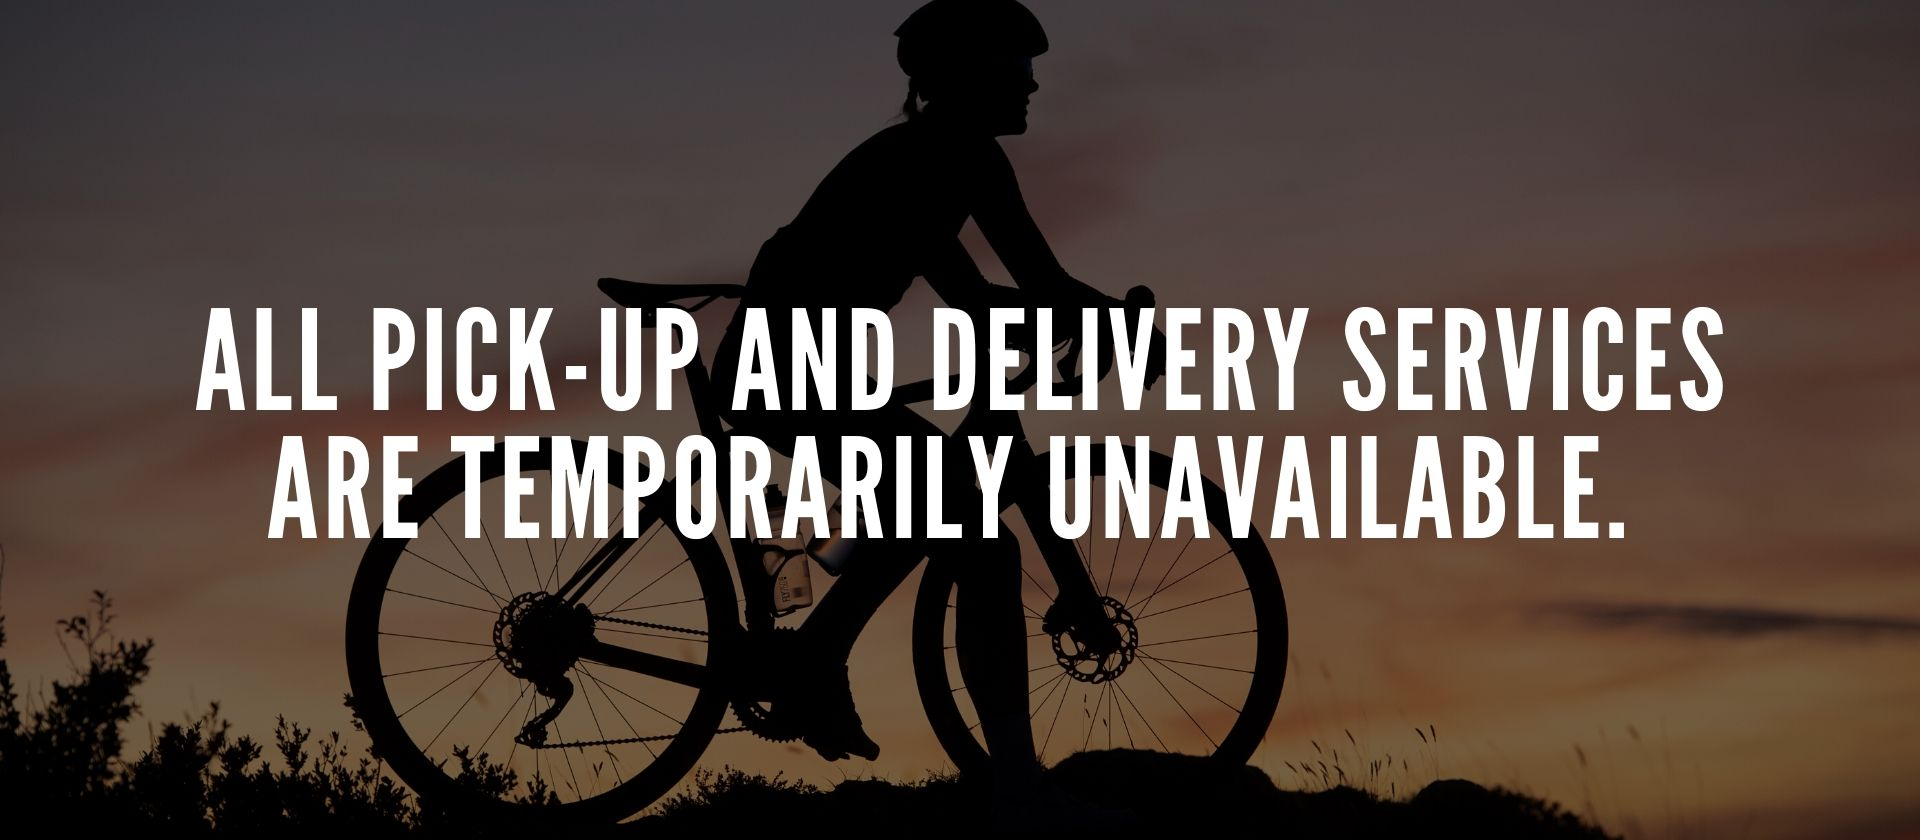 All pick-up and delivery services are temporarily unavailable.